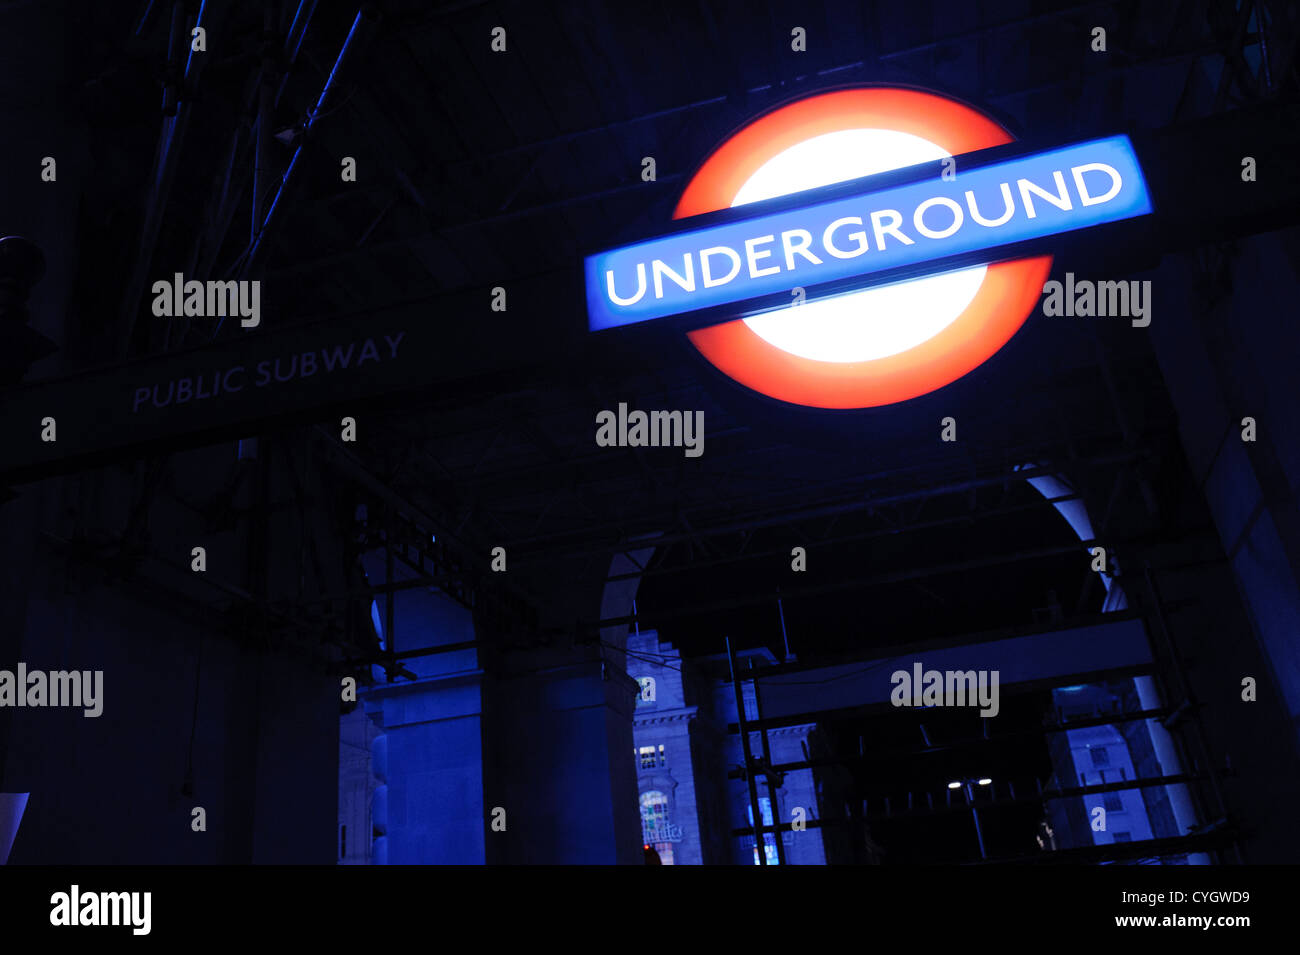 London Underground sign at night Photo Stock